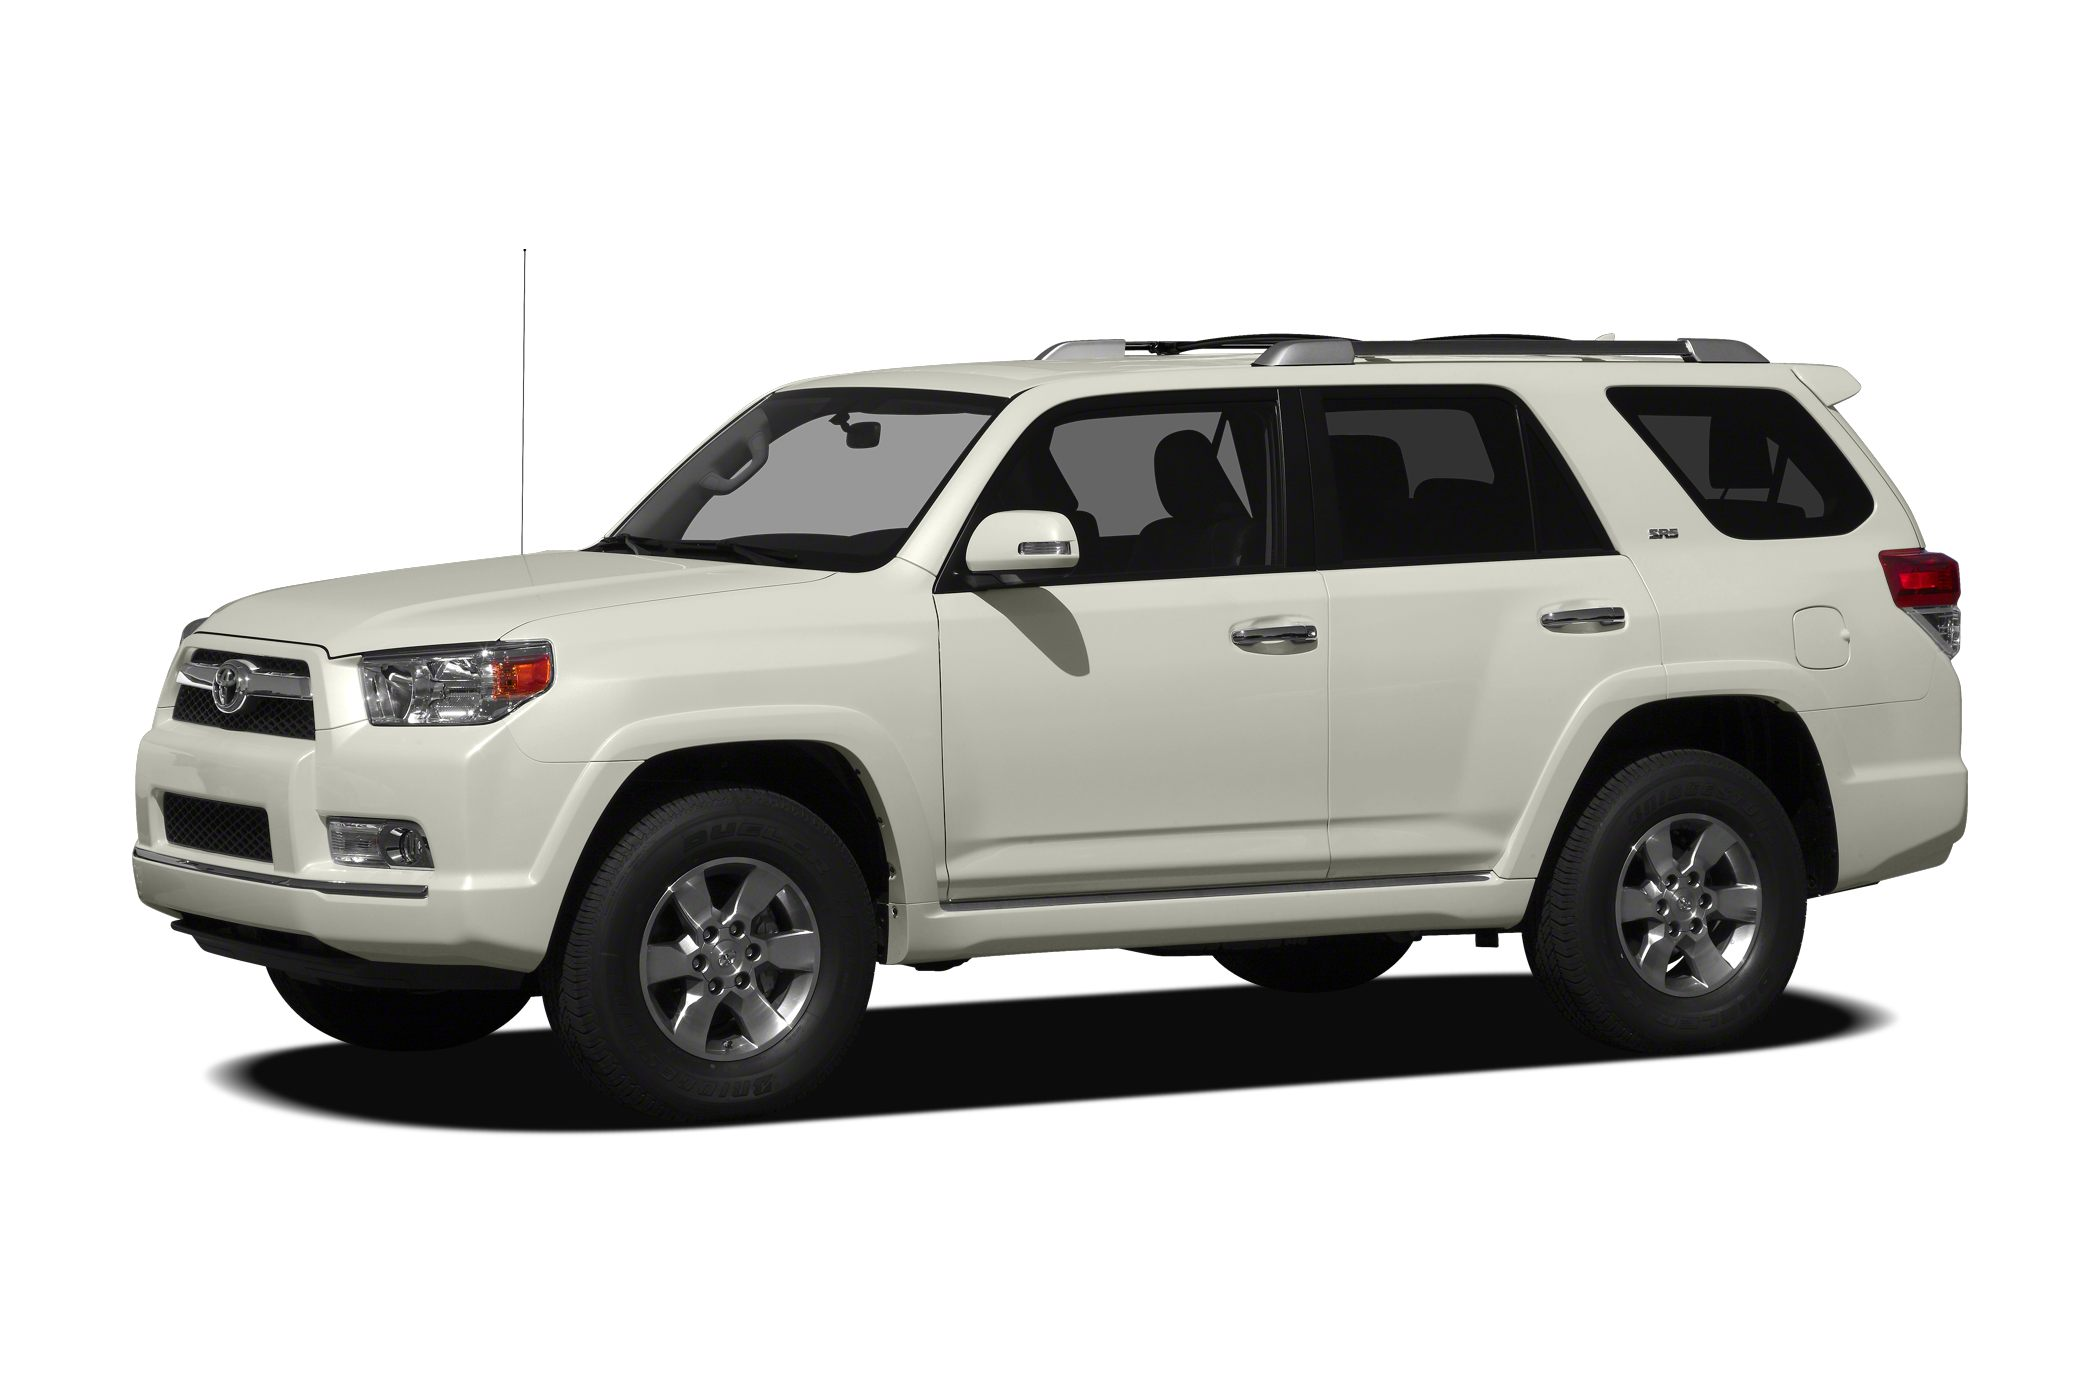 2011 Toyota 4Runner SR5 SUV for sale in Jacksonville for $0 with 68,790 miles